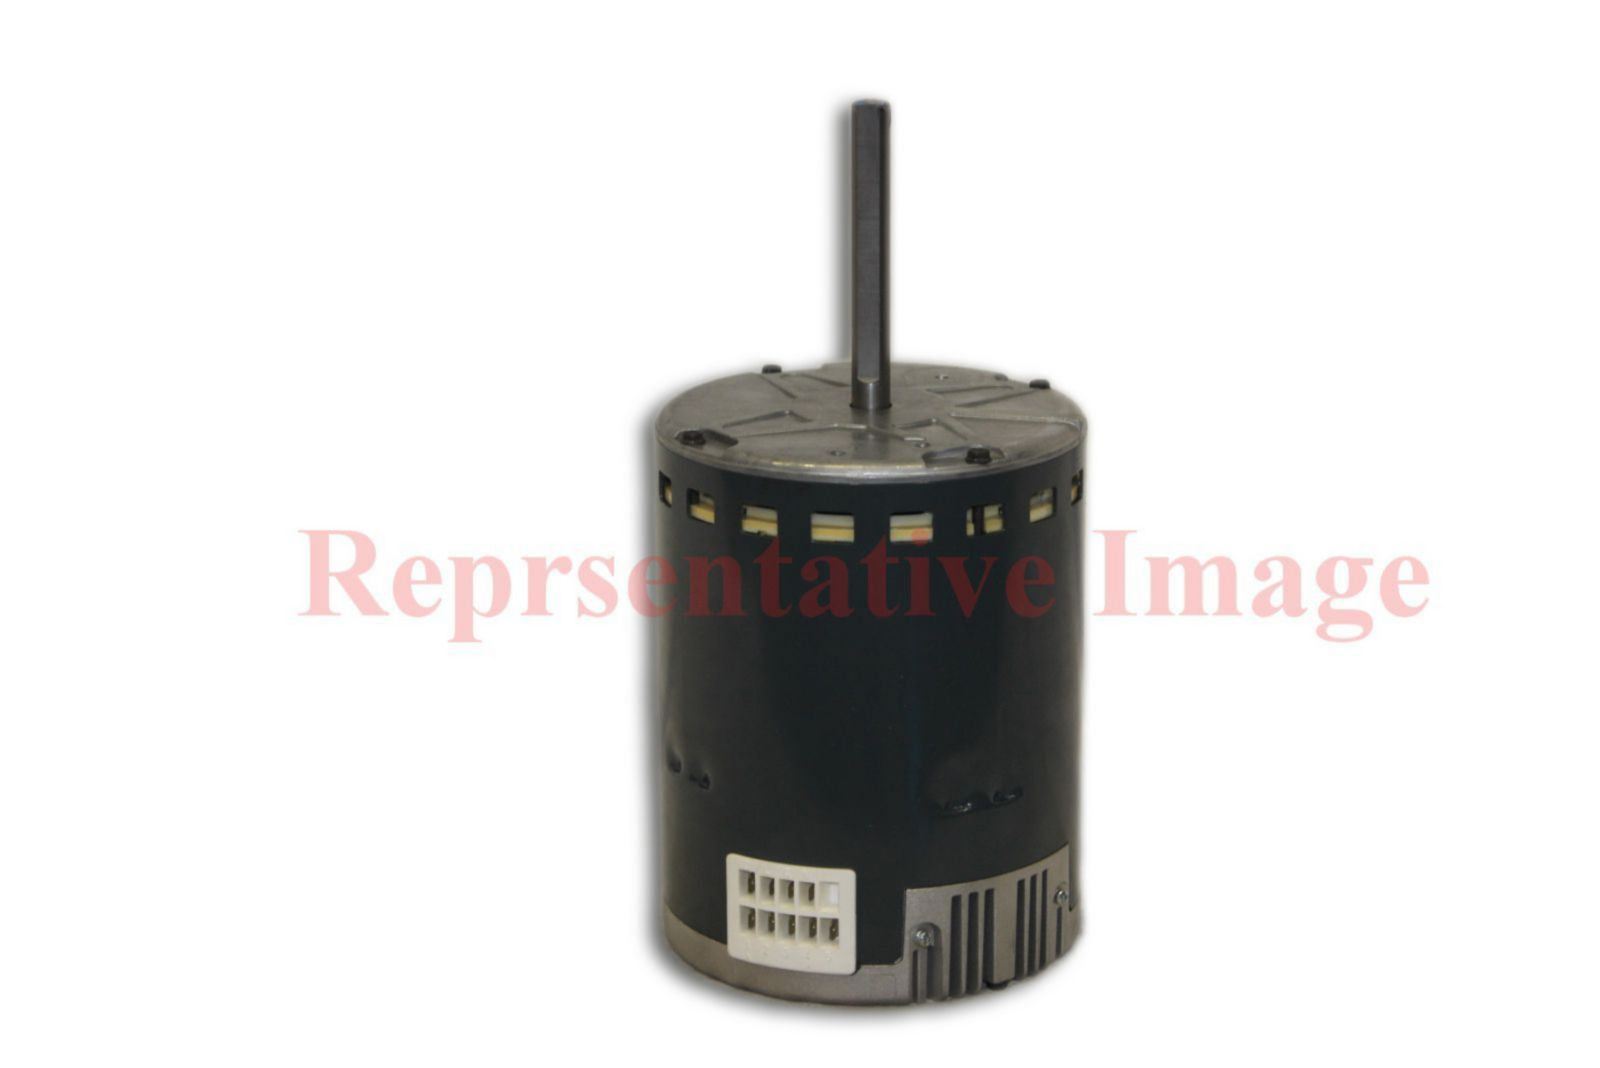 rcd-parts_ceri-b0189001_article_1411645331644_en_normal_d3b54e78-385f-4687-aeec-91d05c099917.jpg?v=1490112970